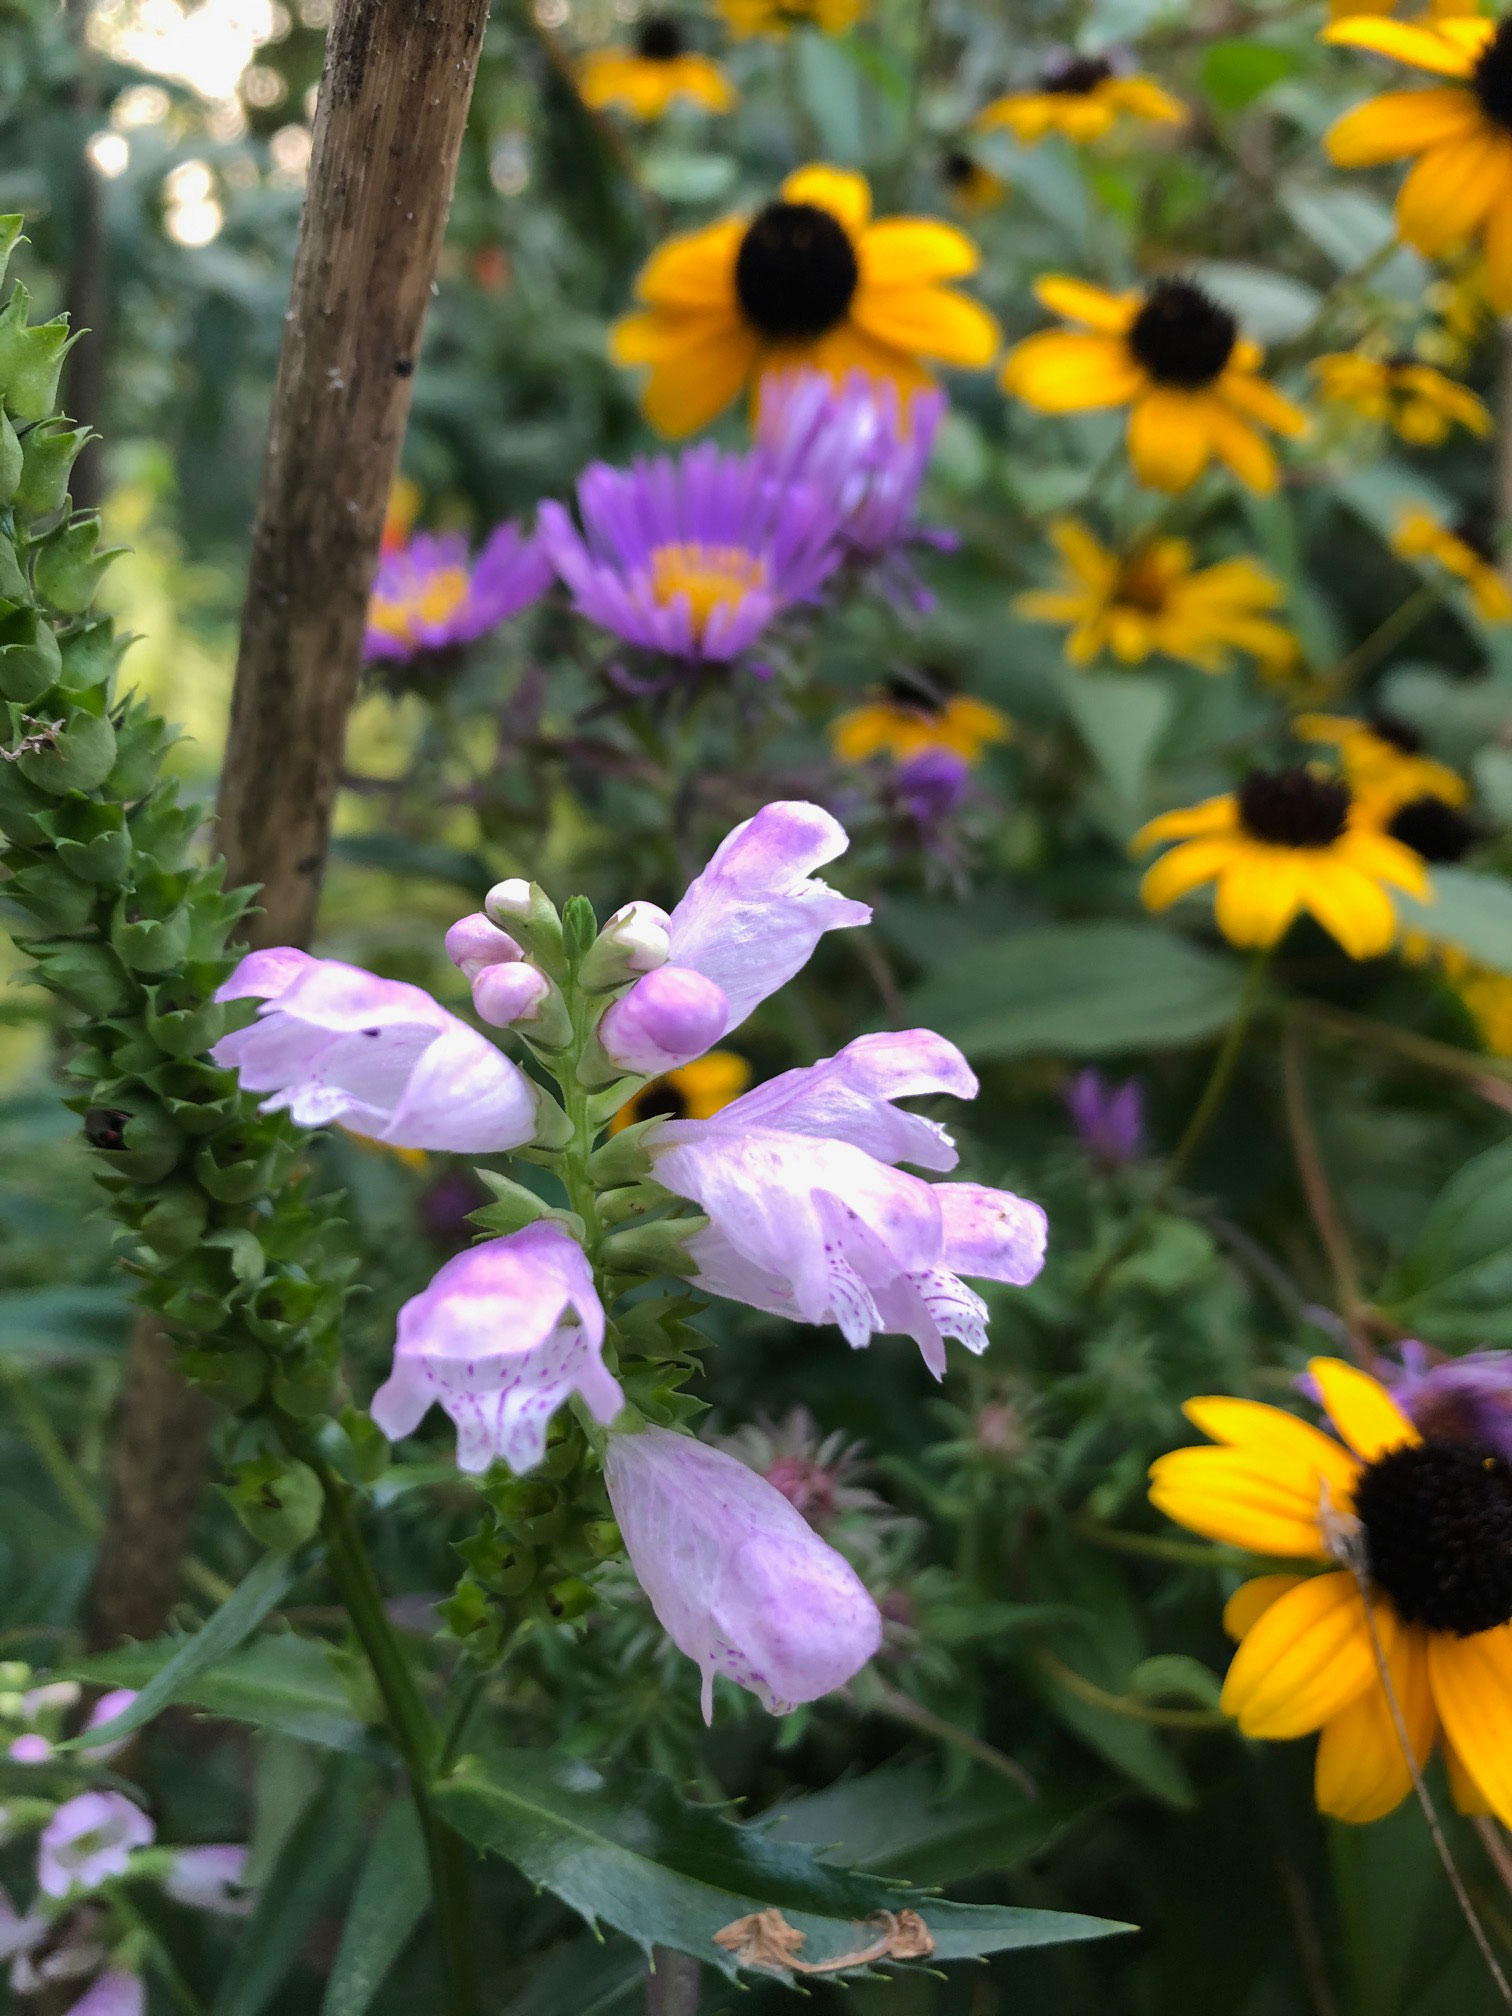 Obedient Plant flower, with asters and black-eyed susans in the background